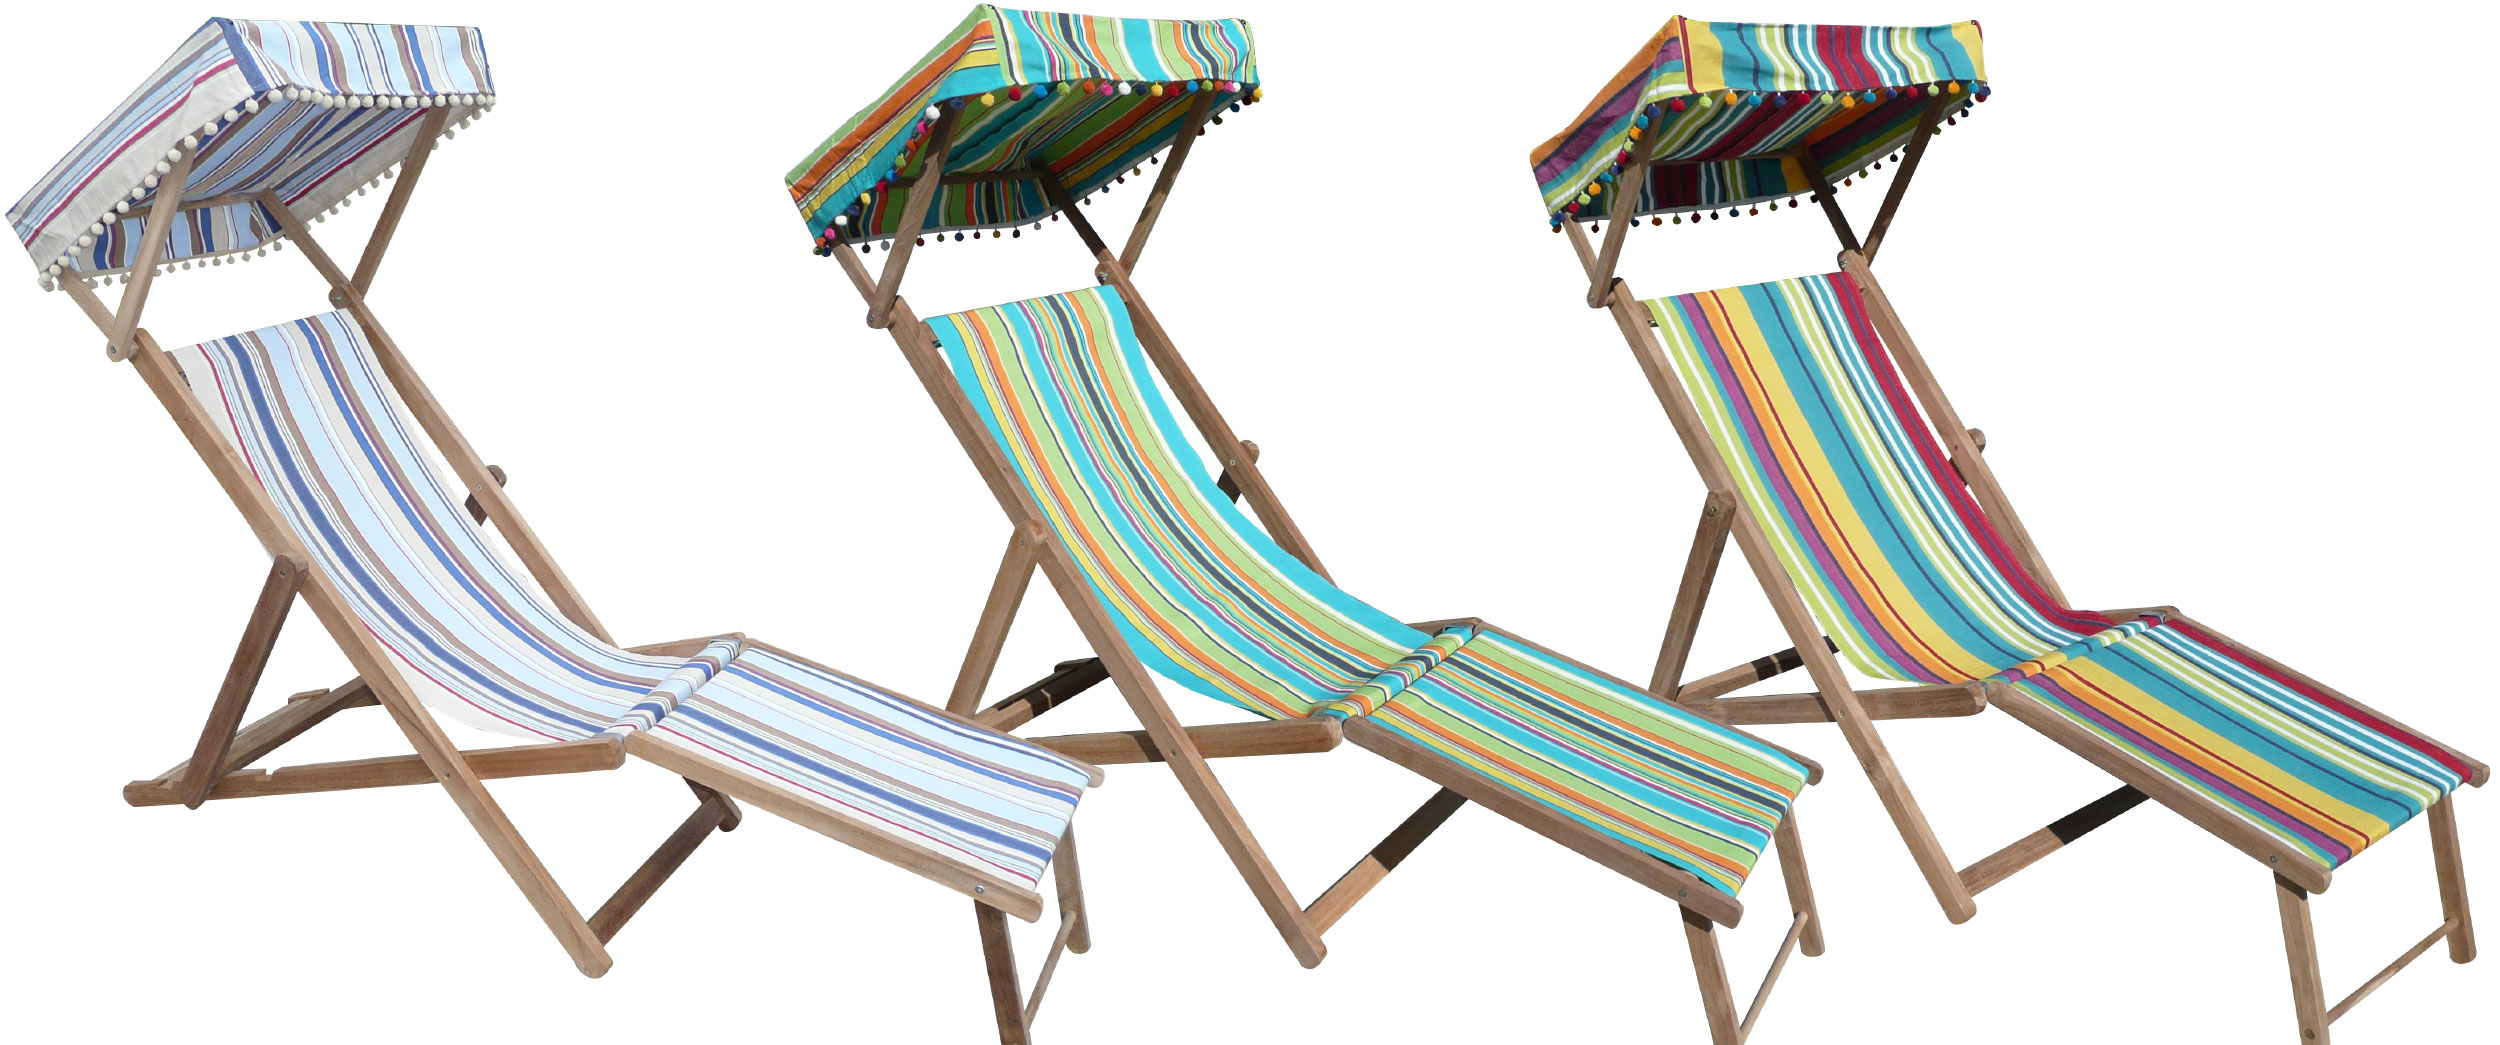 Edwardian Deckchairs with Canopy and Footstool - Deck Chairs Vintage Wooden Deckchairs Traditional Folding Deck